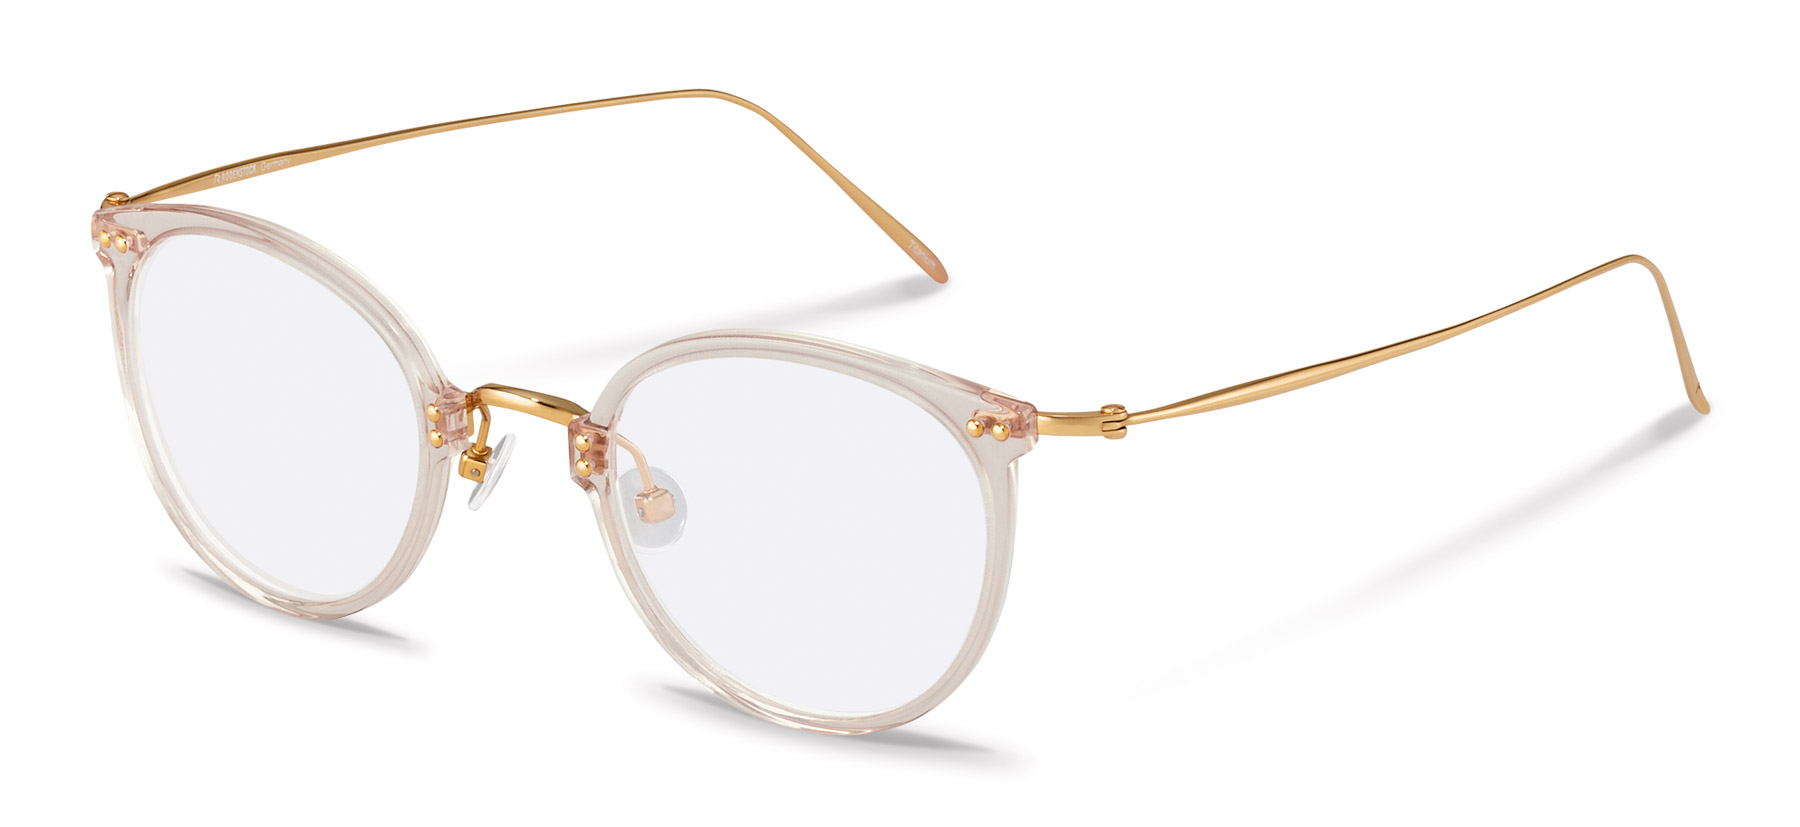 Rodenstock-Bril-R7079-apricot/gold